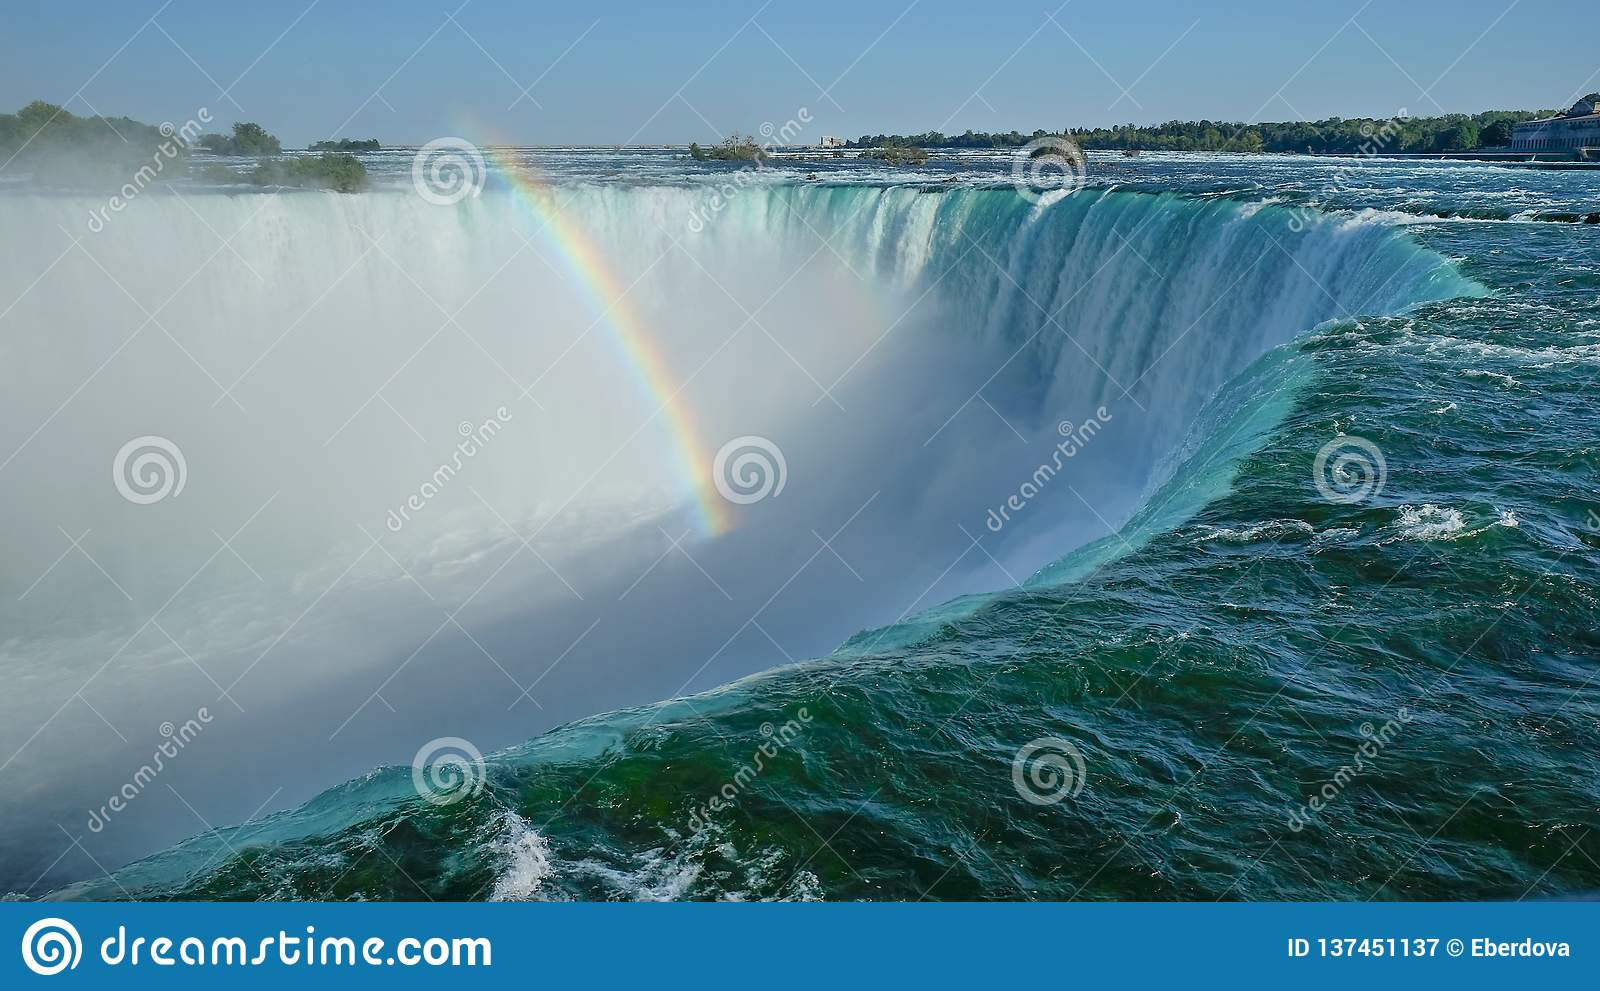 Close unabstracted view of Niagara Falls cliff edge from Canadian side.